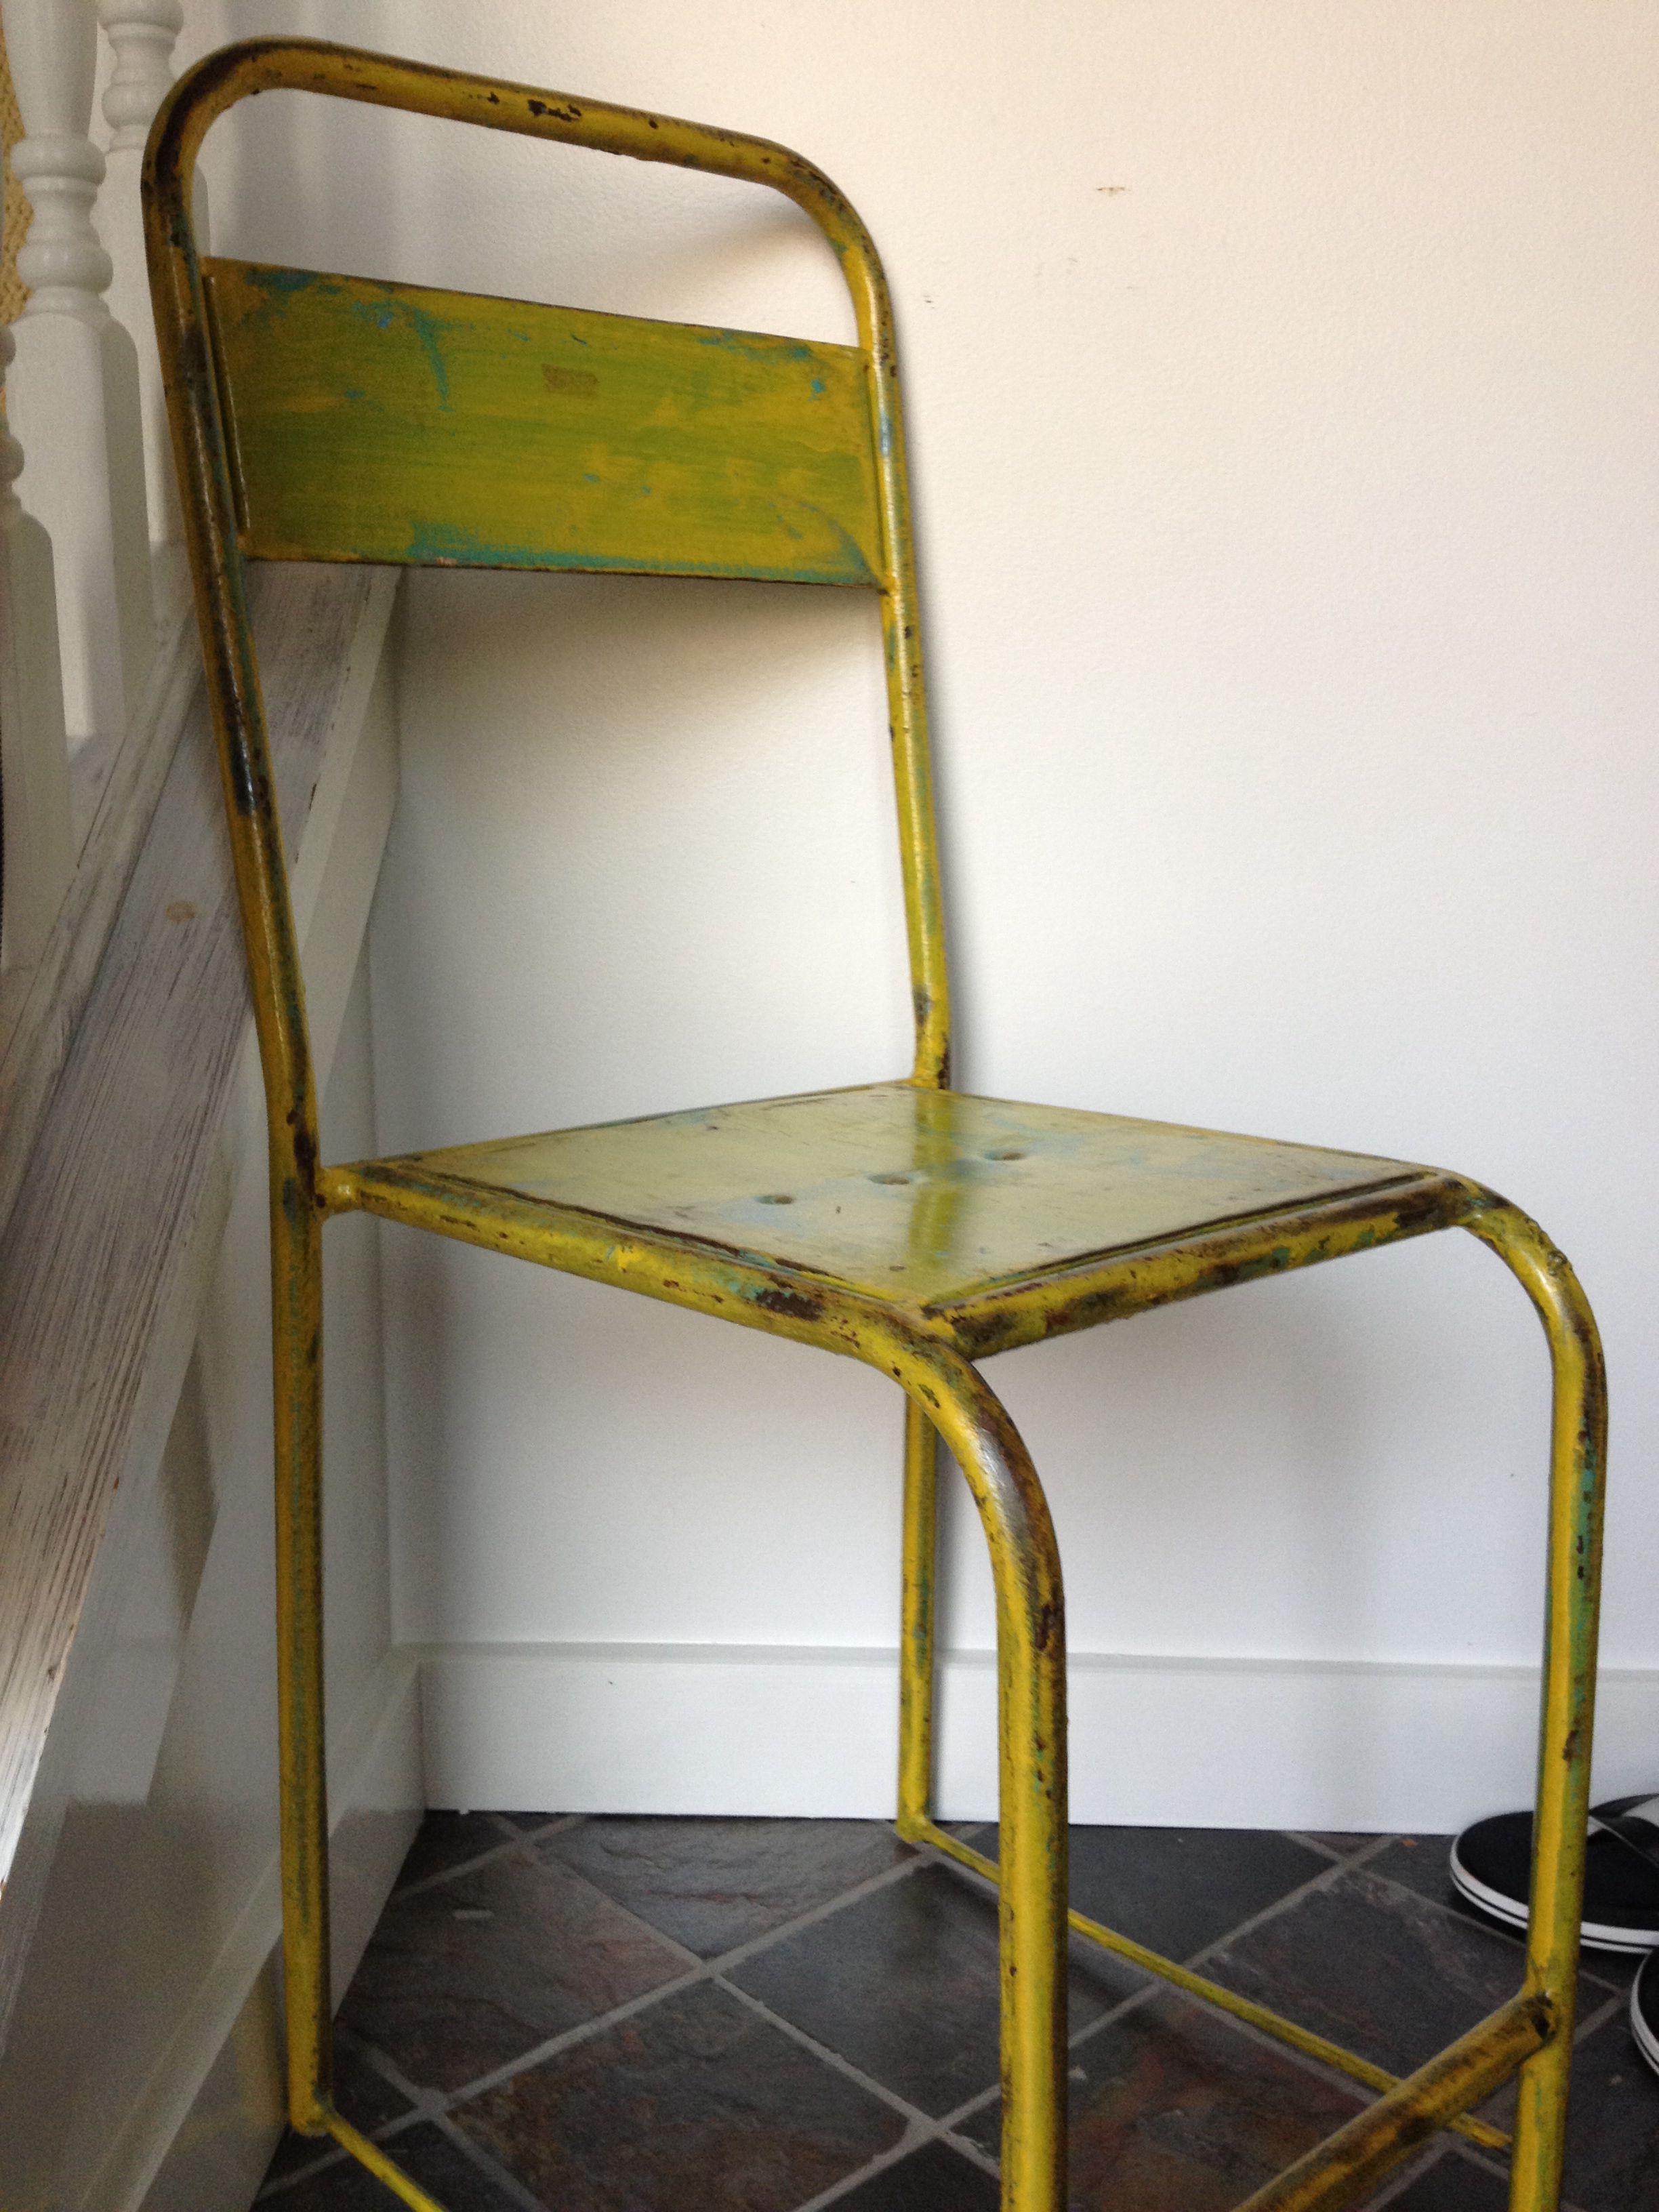 folding chair upcycle office chairs chicago old metal camp upcycled from tuesday morning 25